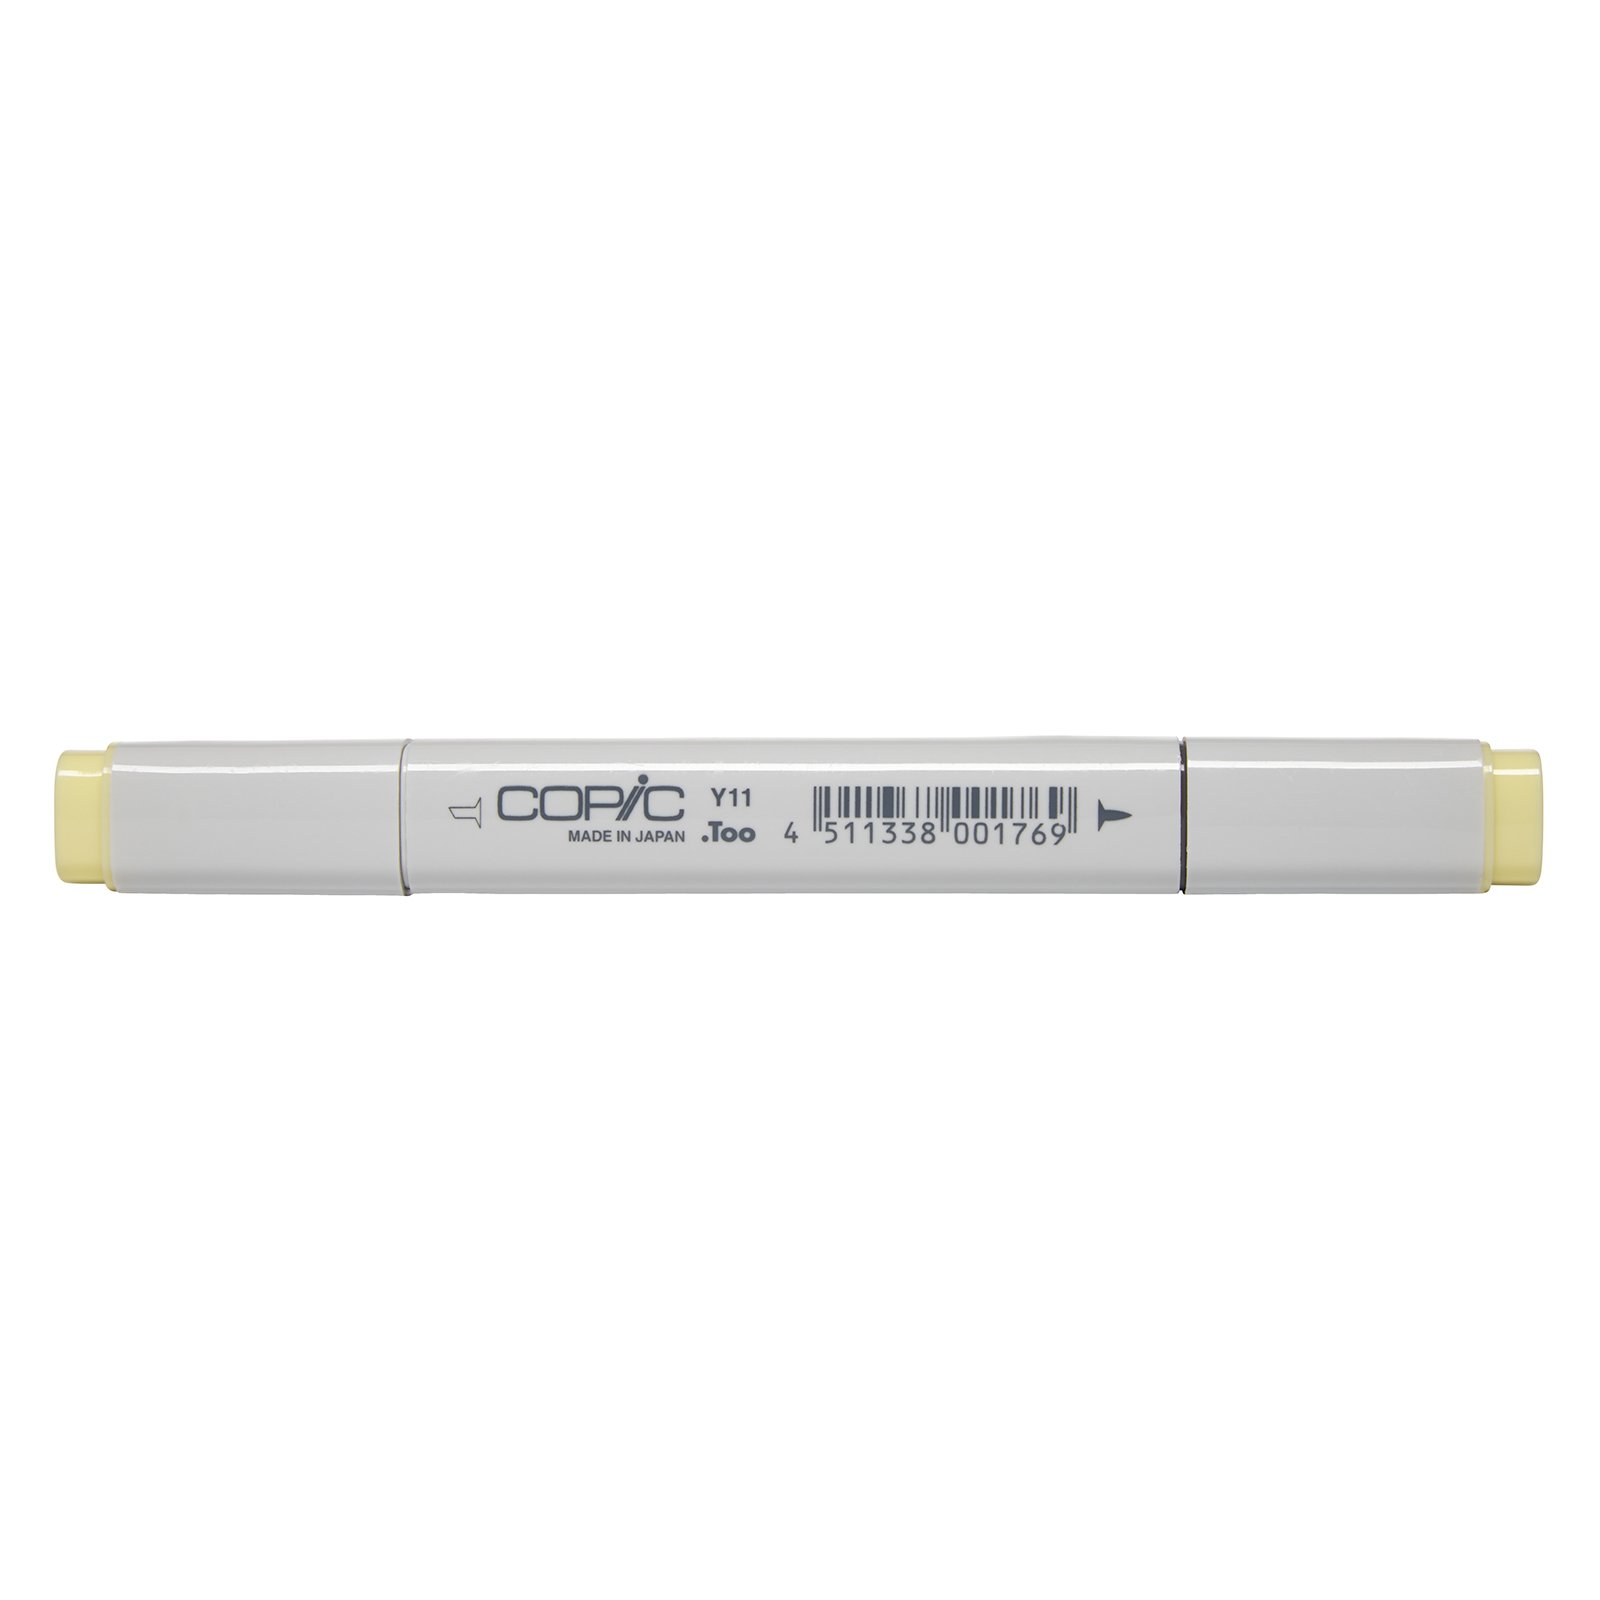 Copic Marker with Replaceable Nib, Y11-Copic, Pale Yellow